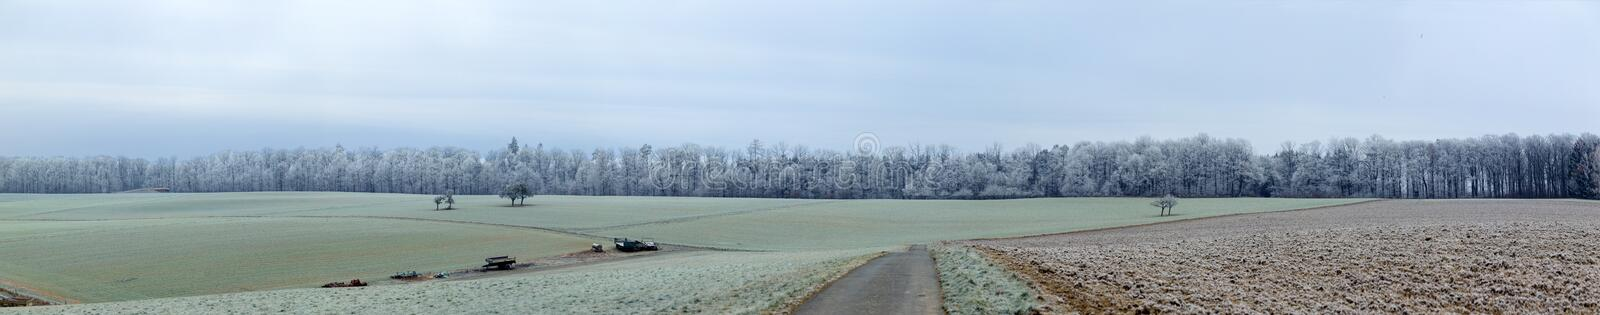 Panoramic winter landscape in rural area in Idstein. Germany royalty free stock photos